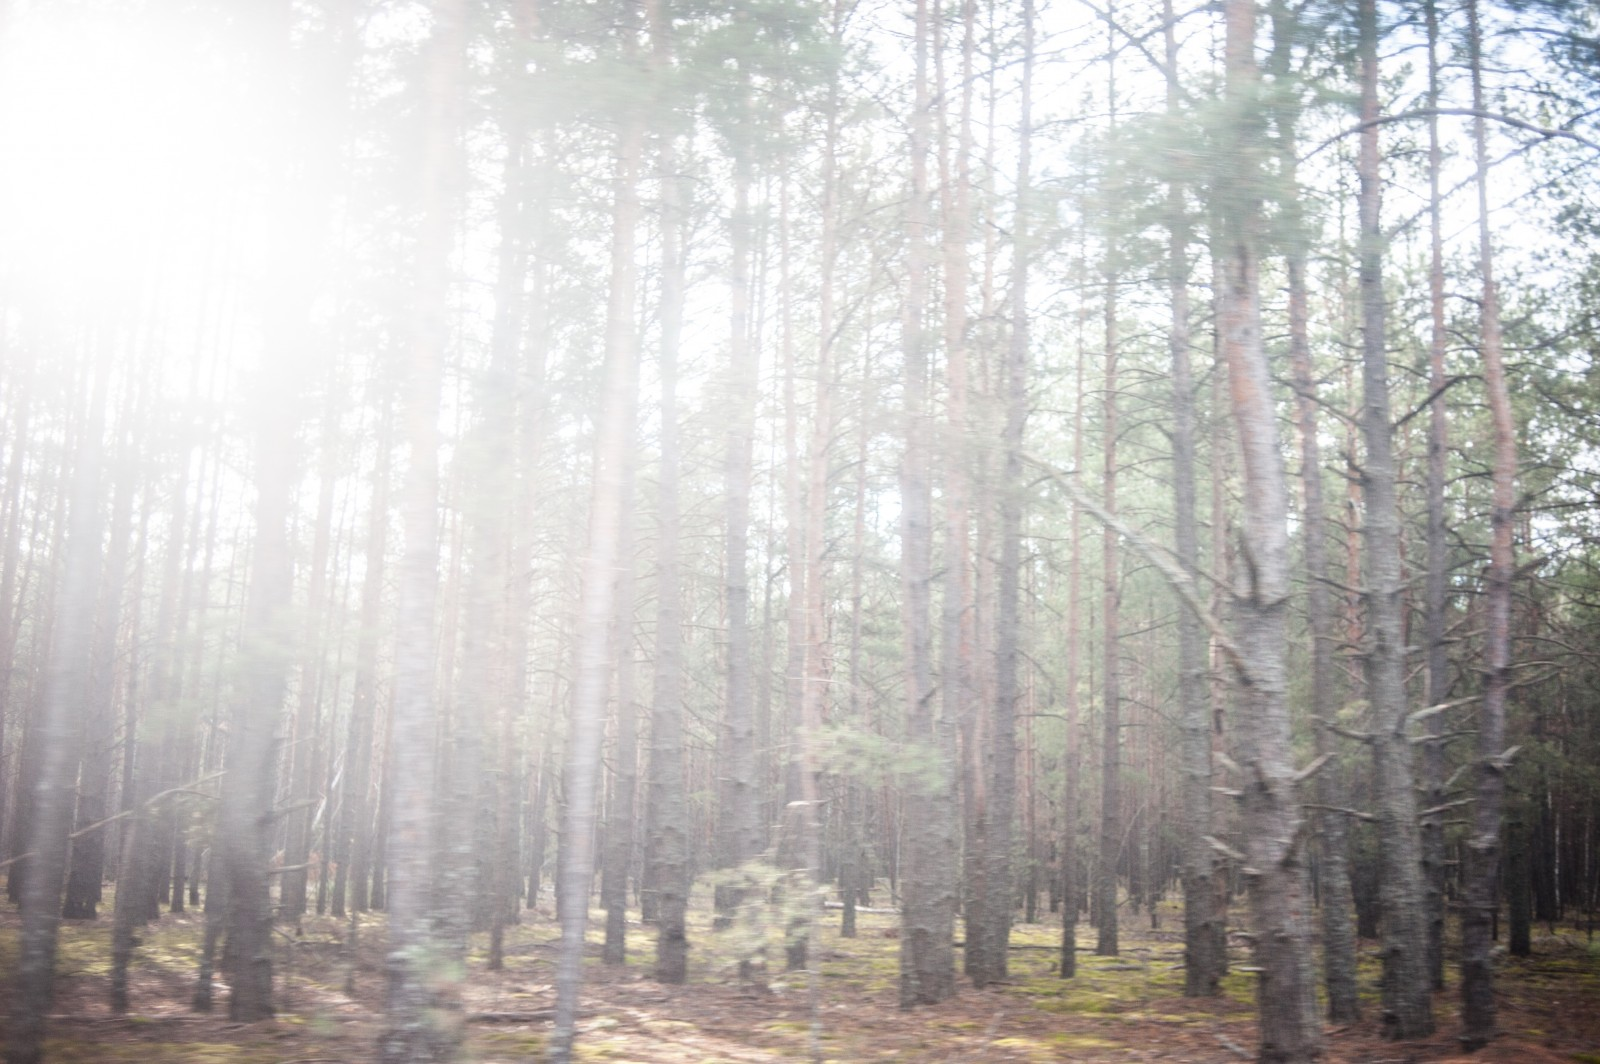 The wild forest inside the Exclusion Zone, where many people gather mushrooms and illegally hunt for game